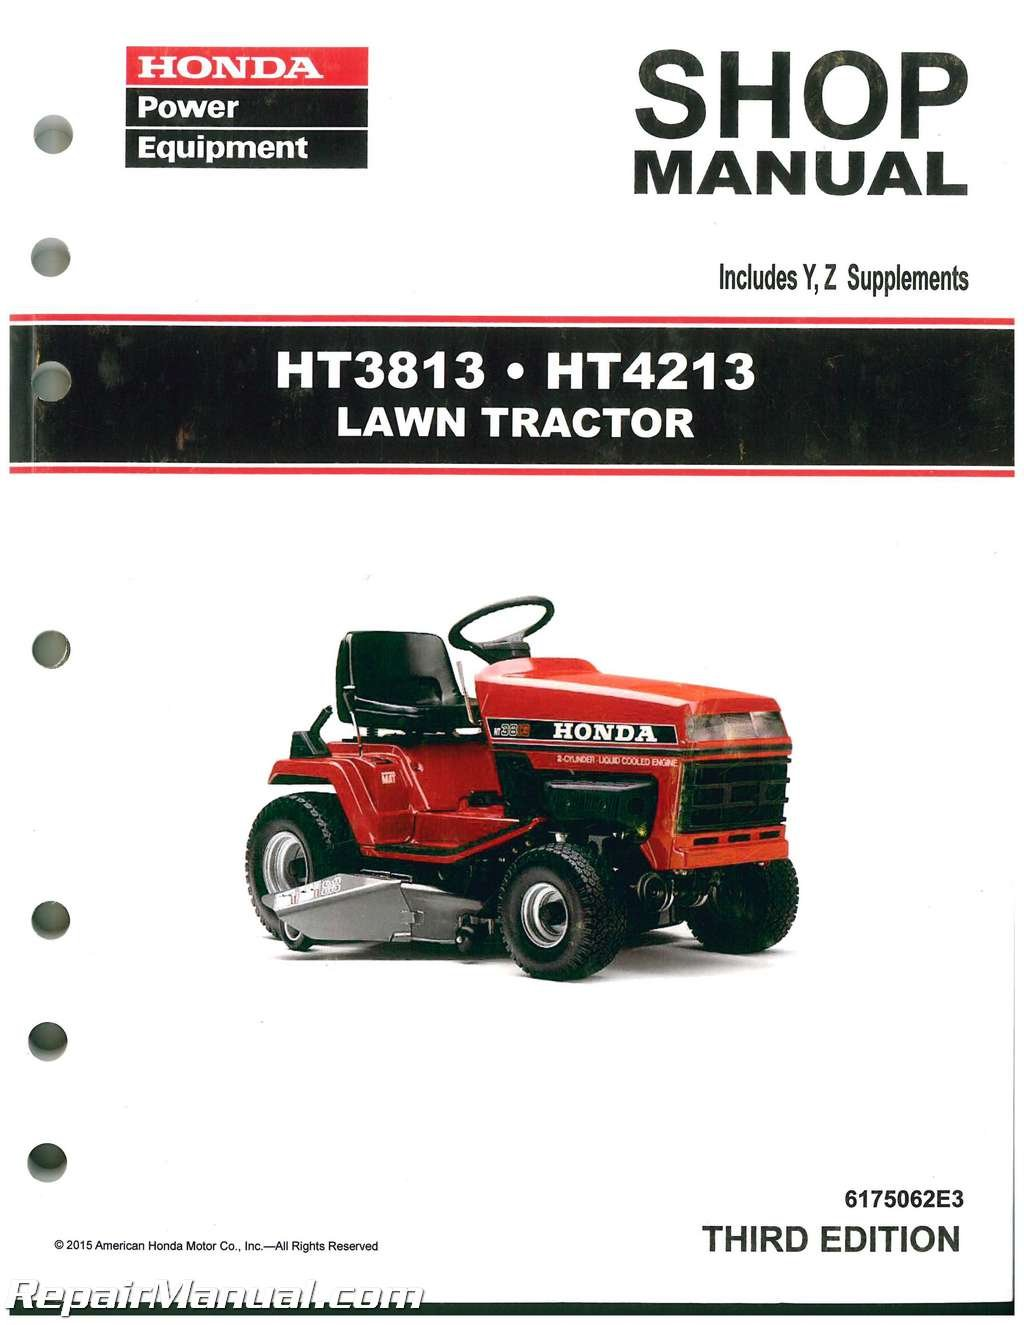 Astonishing 6175062E3 Honda Ht3813 Ht4213 Lawn Tractor Shop Manual Manufacturer Wiring Digital Resources Dimetprontobusorg